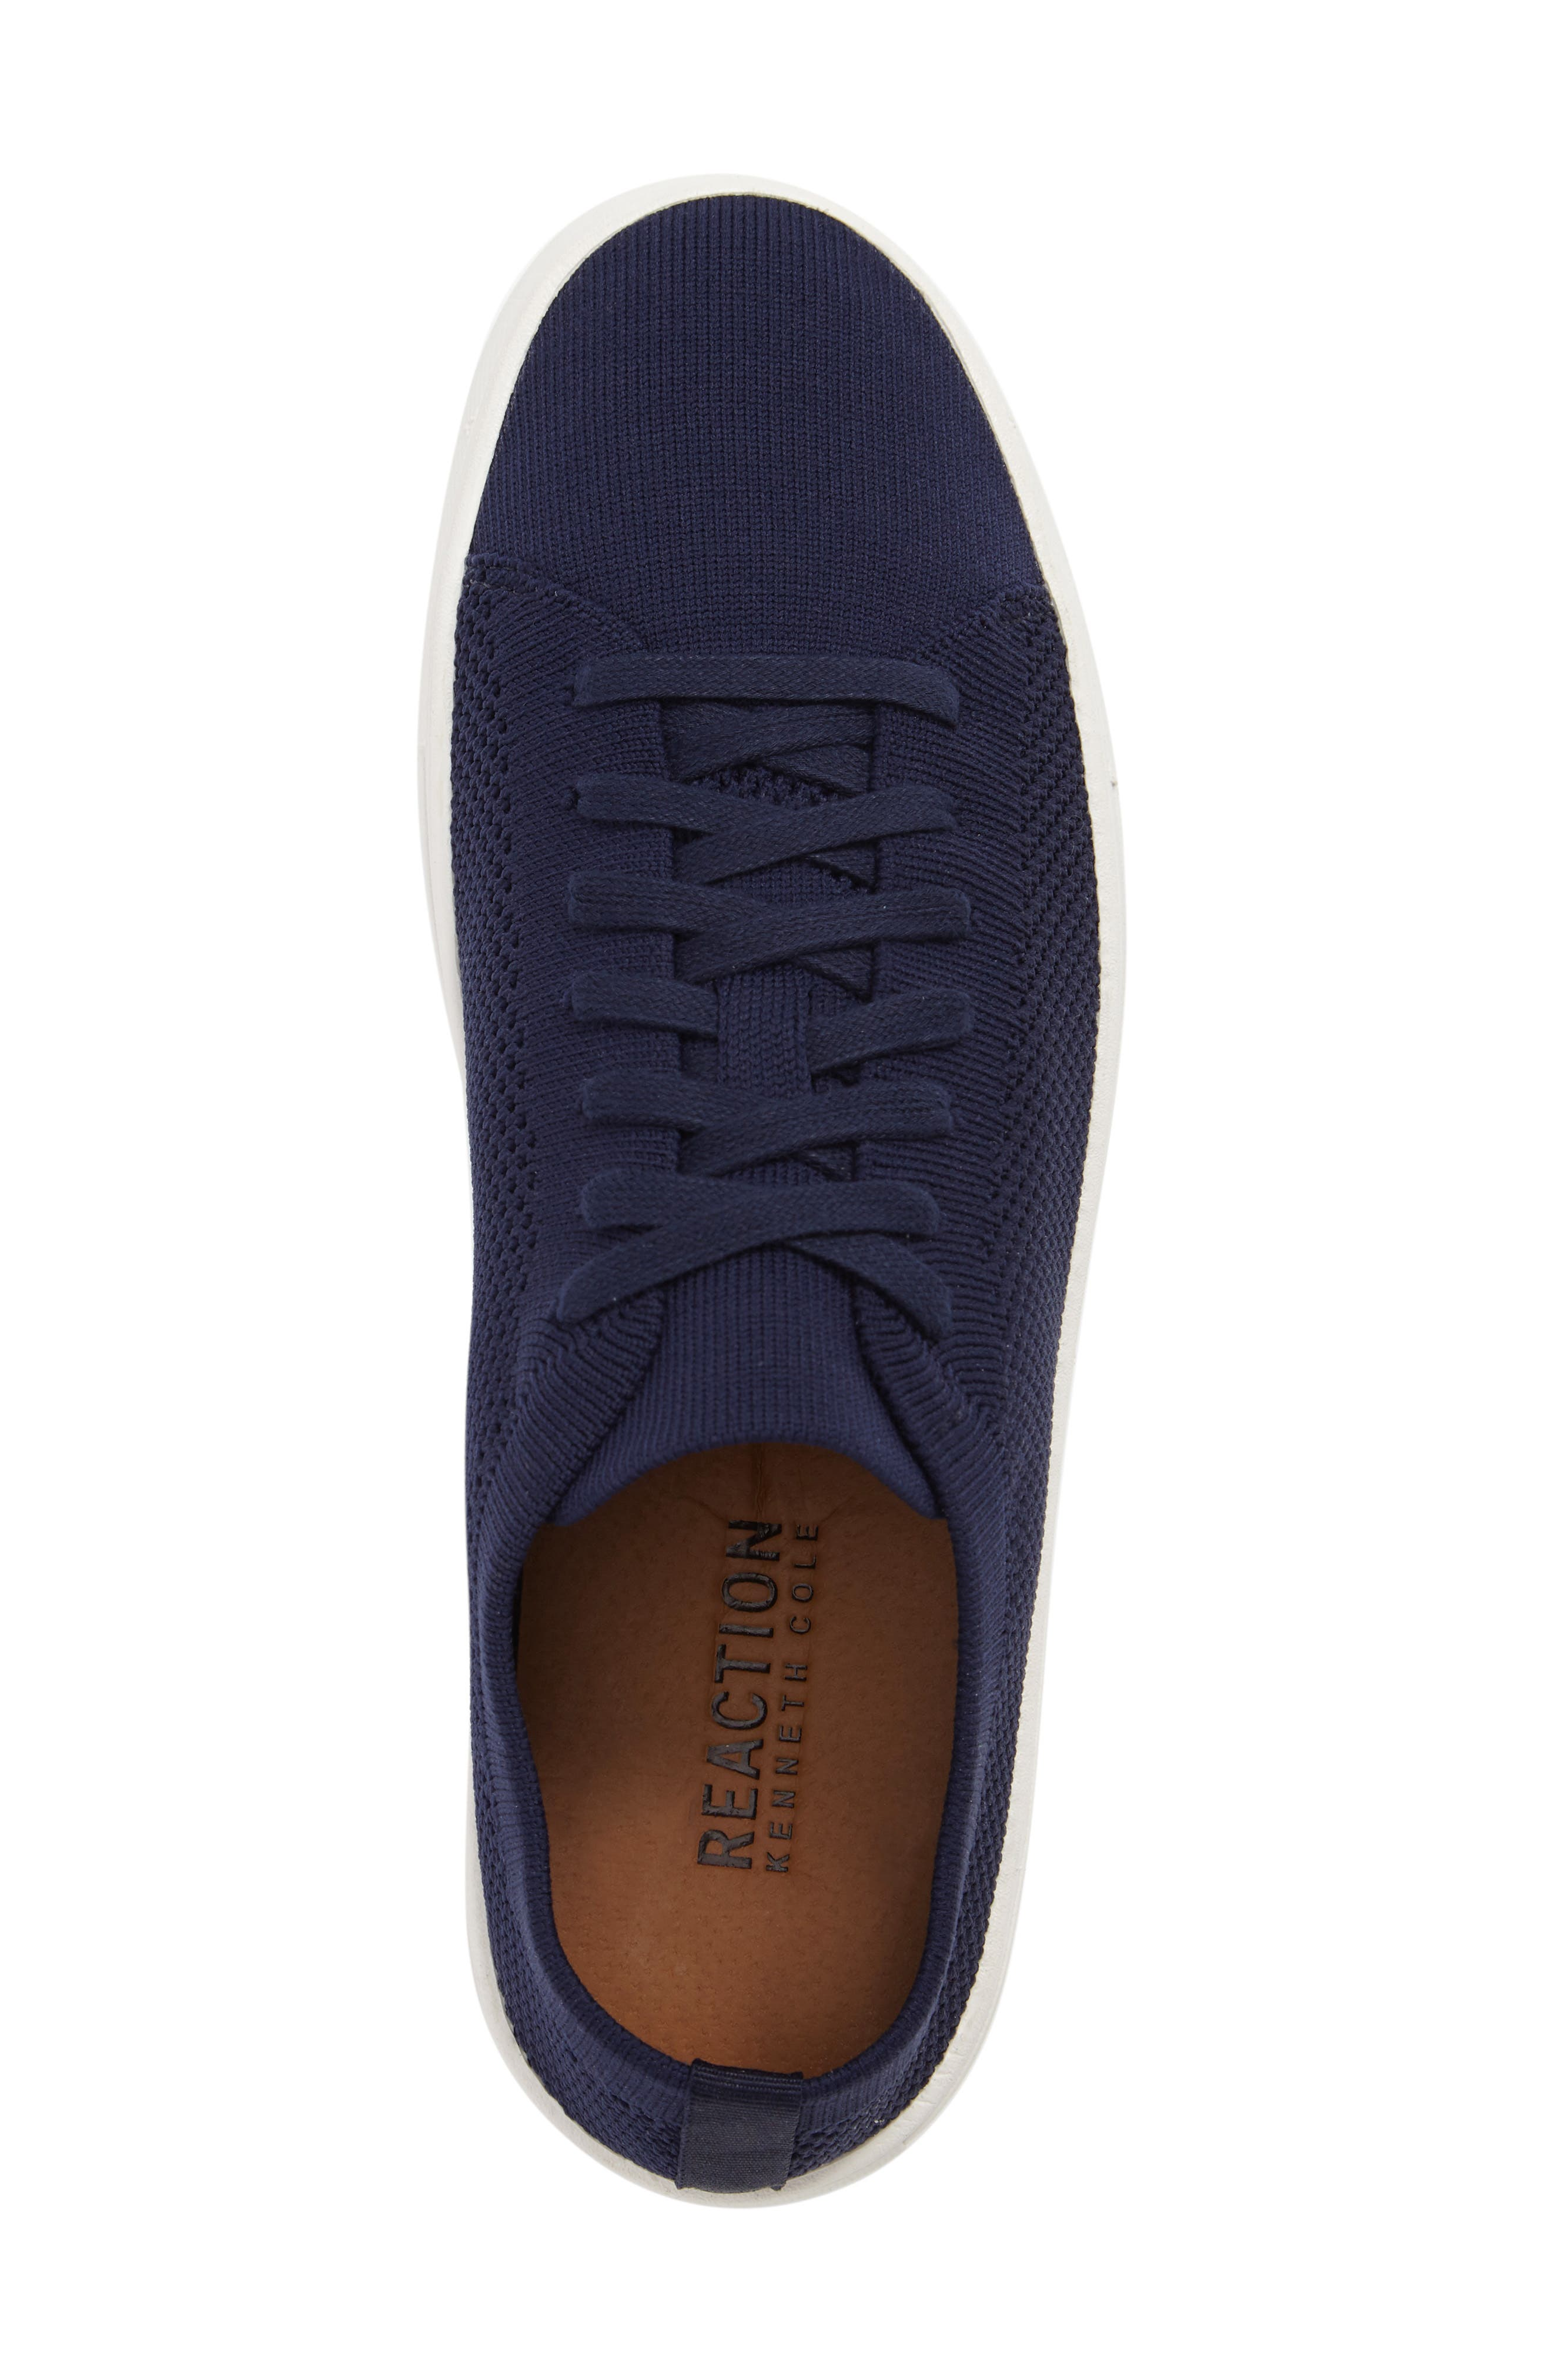 On the Road Woven Sneaker,                             Alternate thumbnail 5, color,                             Navy